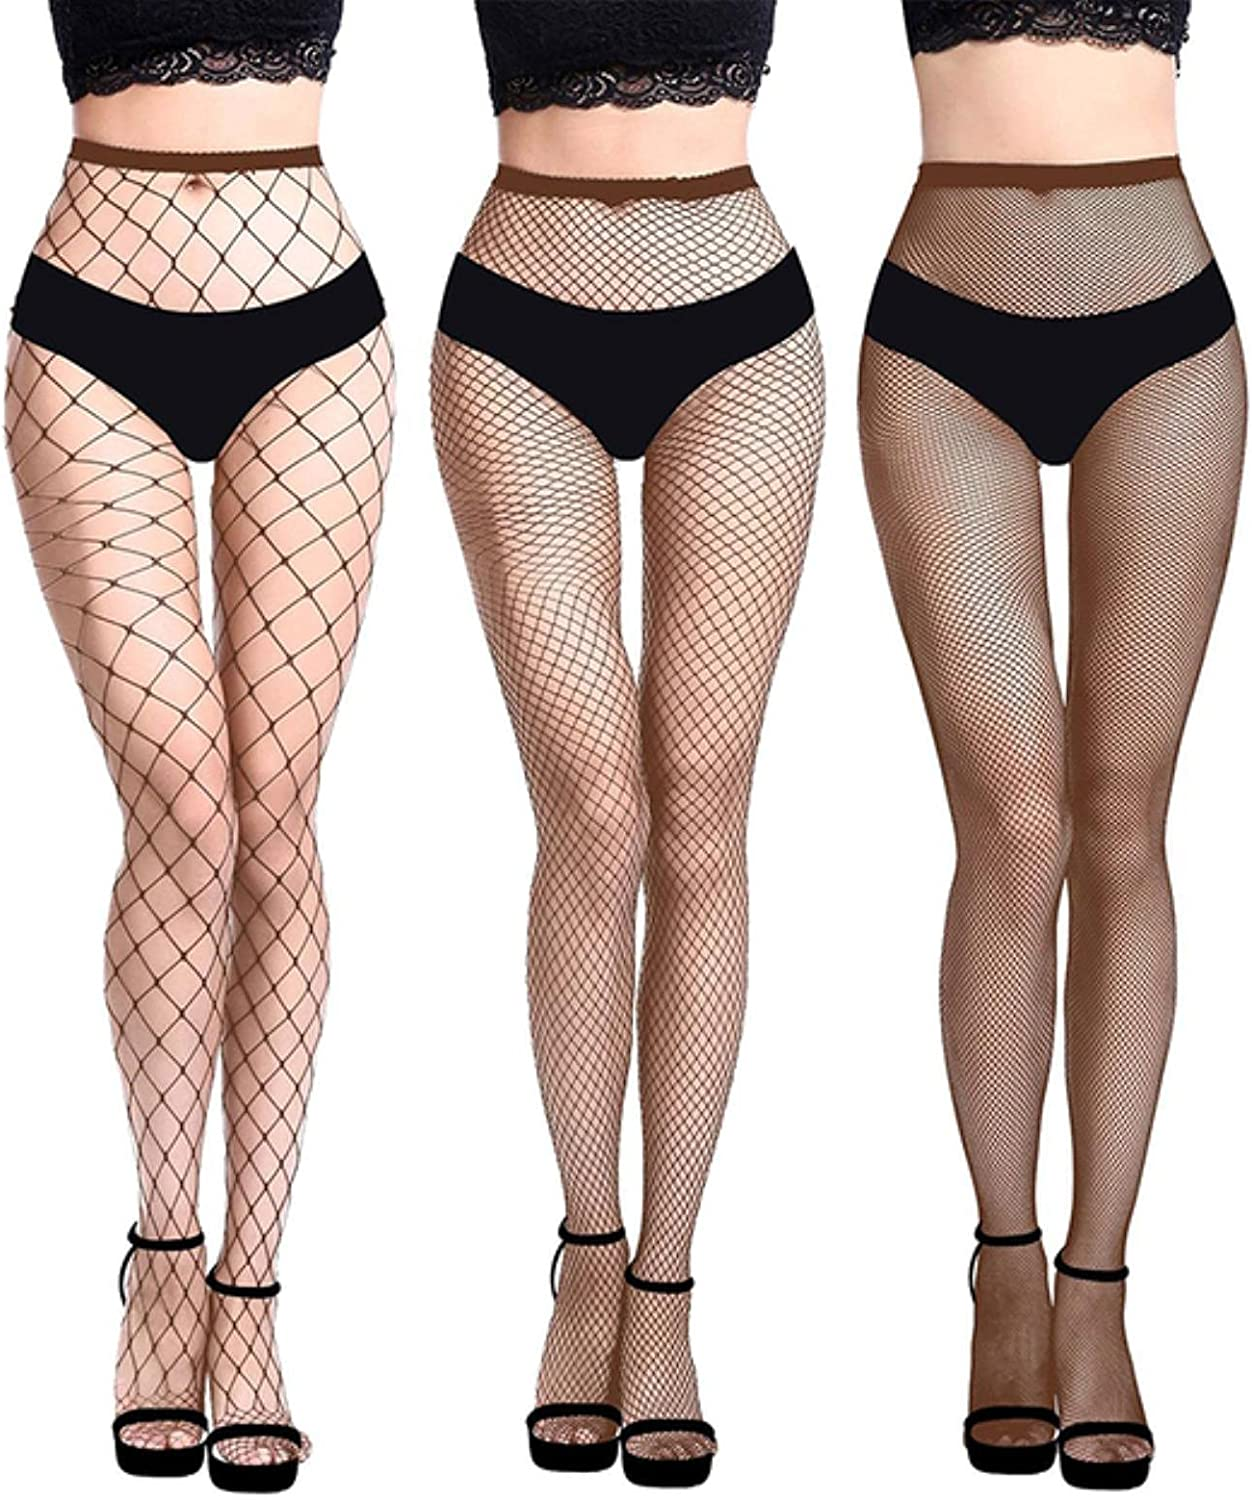 12 Candy Colors Transparent Hollow Out Pantyhose Tights Womens Sexy Mesh Fishnet Stretch Black Stockings Club Party Hosiery